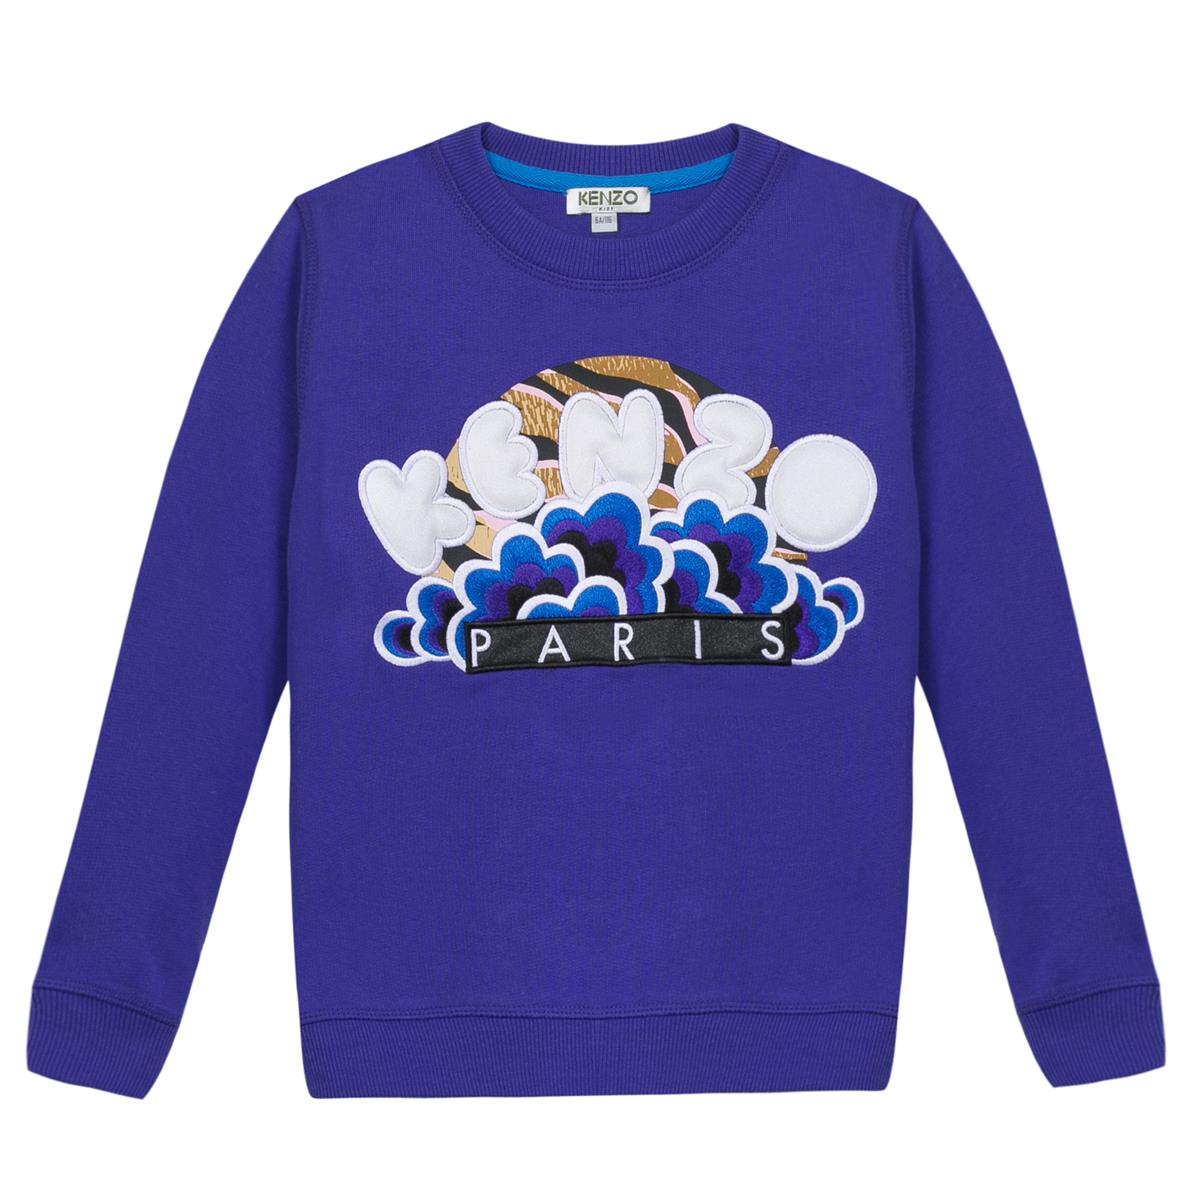 BOY SWEATER FRONT (Copy)